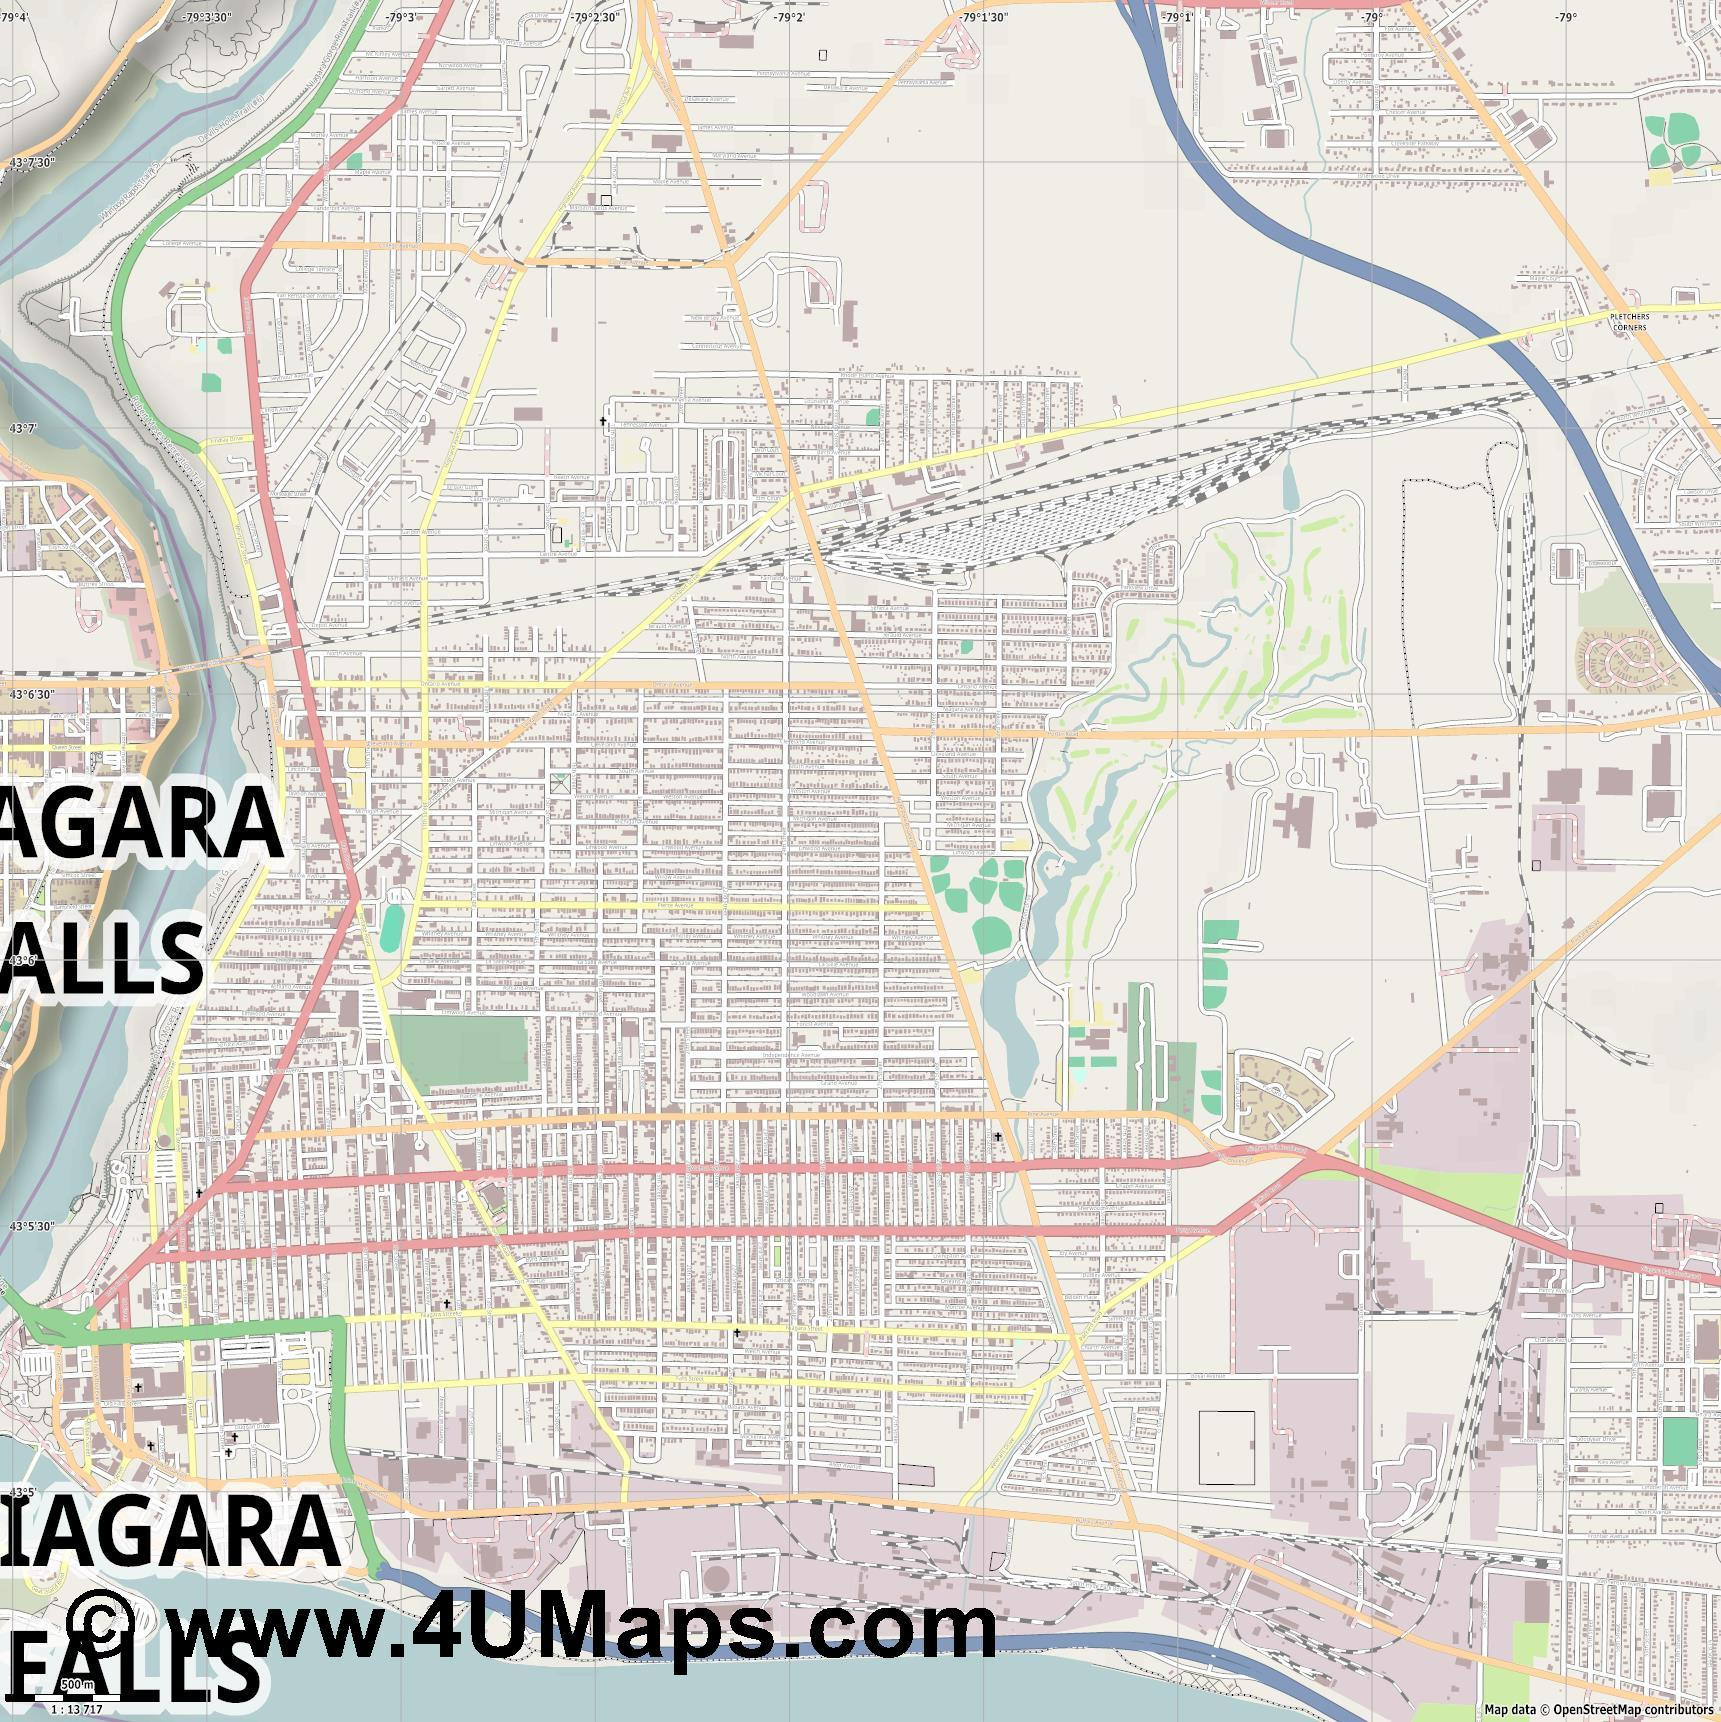 Niagara Falls  NY  jpg ultra high detail preview vector city map